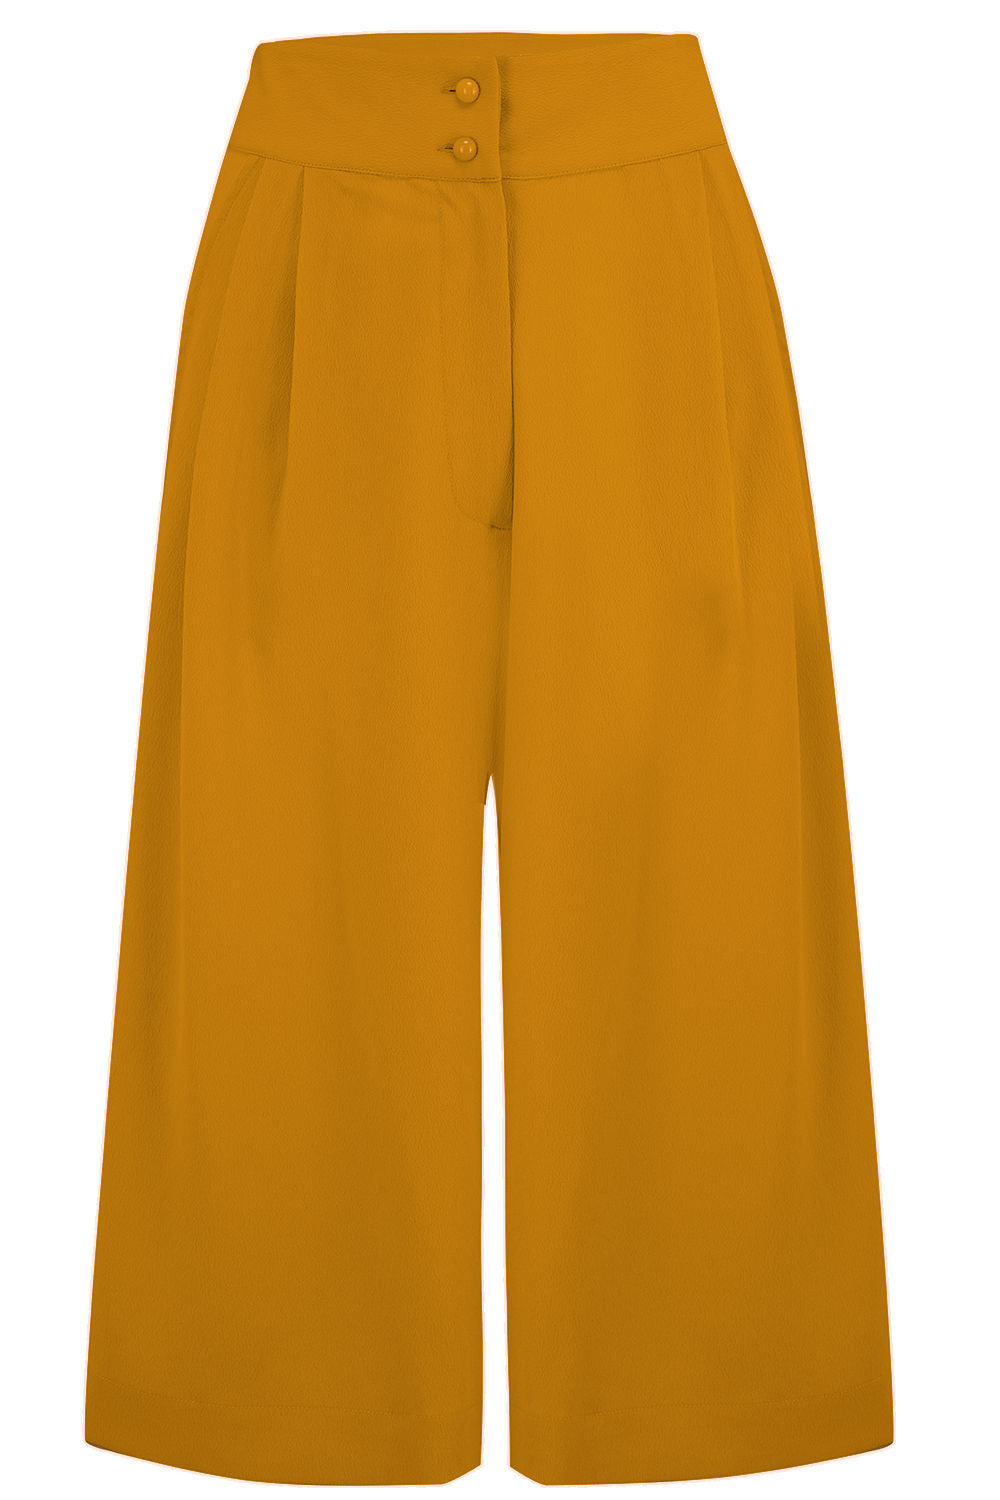 Vintage Shorts, Culottes,  Capris History The Sophia Plazzo Culottes in Solid Mustard Classic  Easy To Wear Vintage Inspired Style £35.00 AT vintagedancer.com